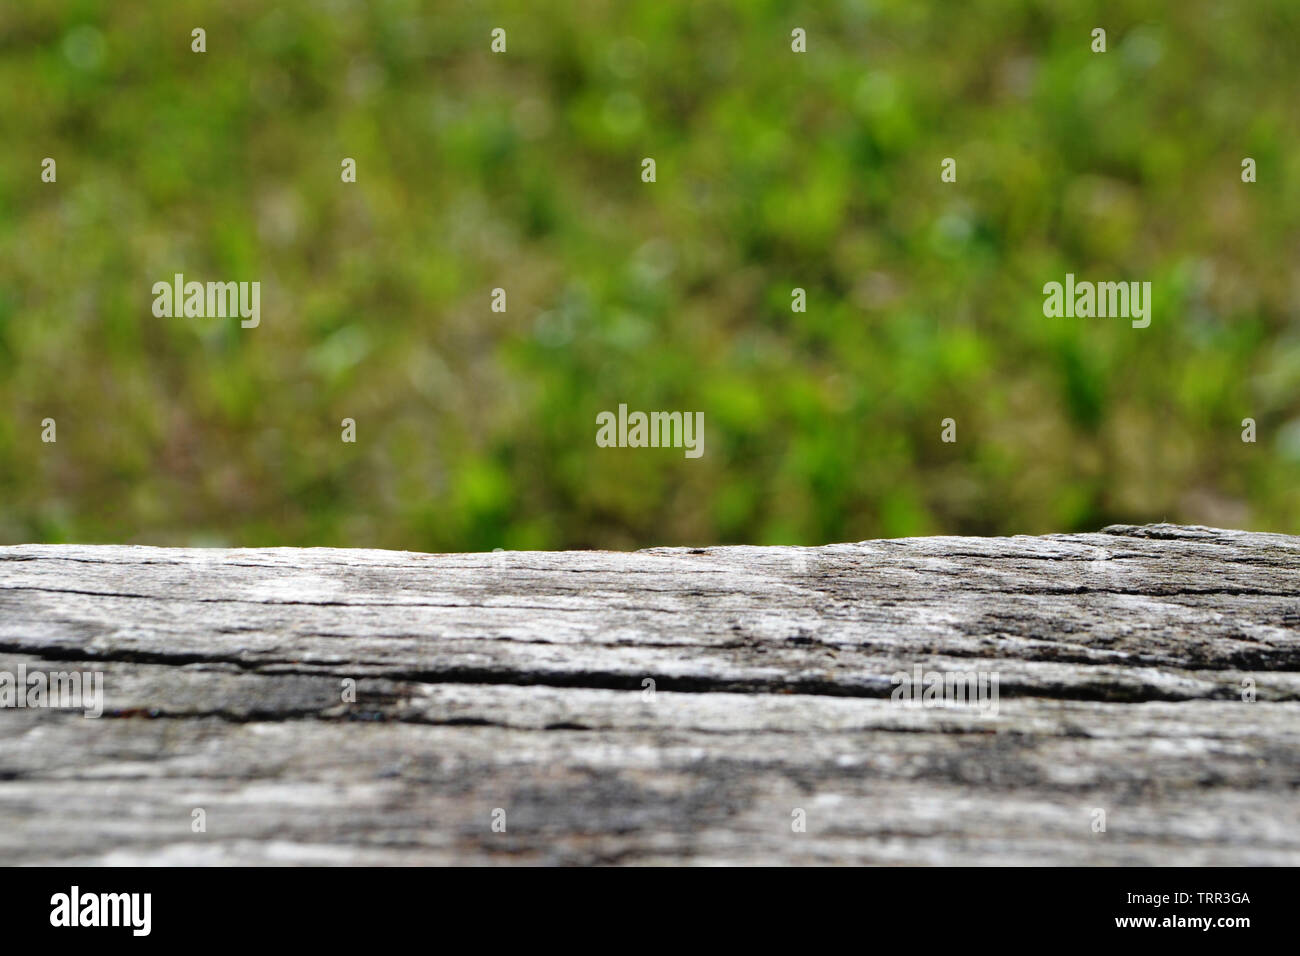 Detail of old wooden bench on blur of fresh green abstract. Stock Photo